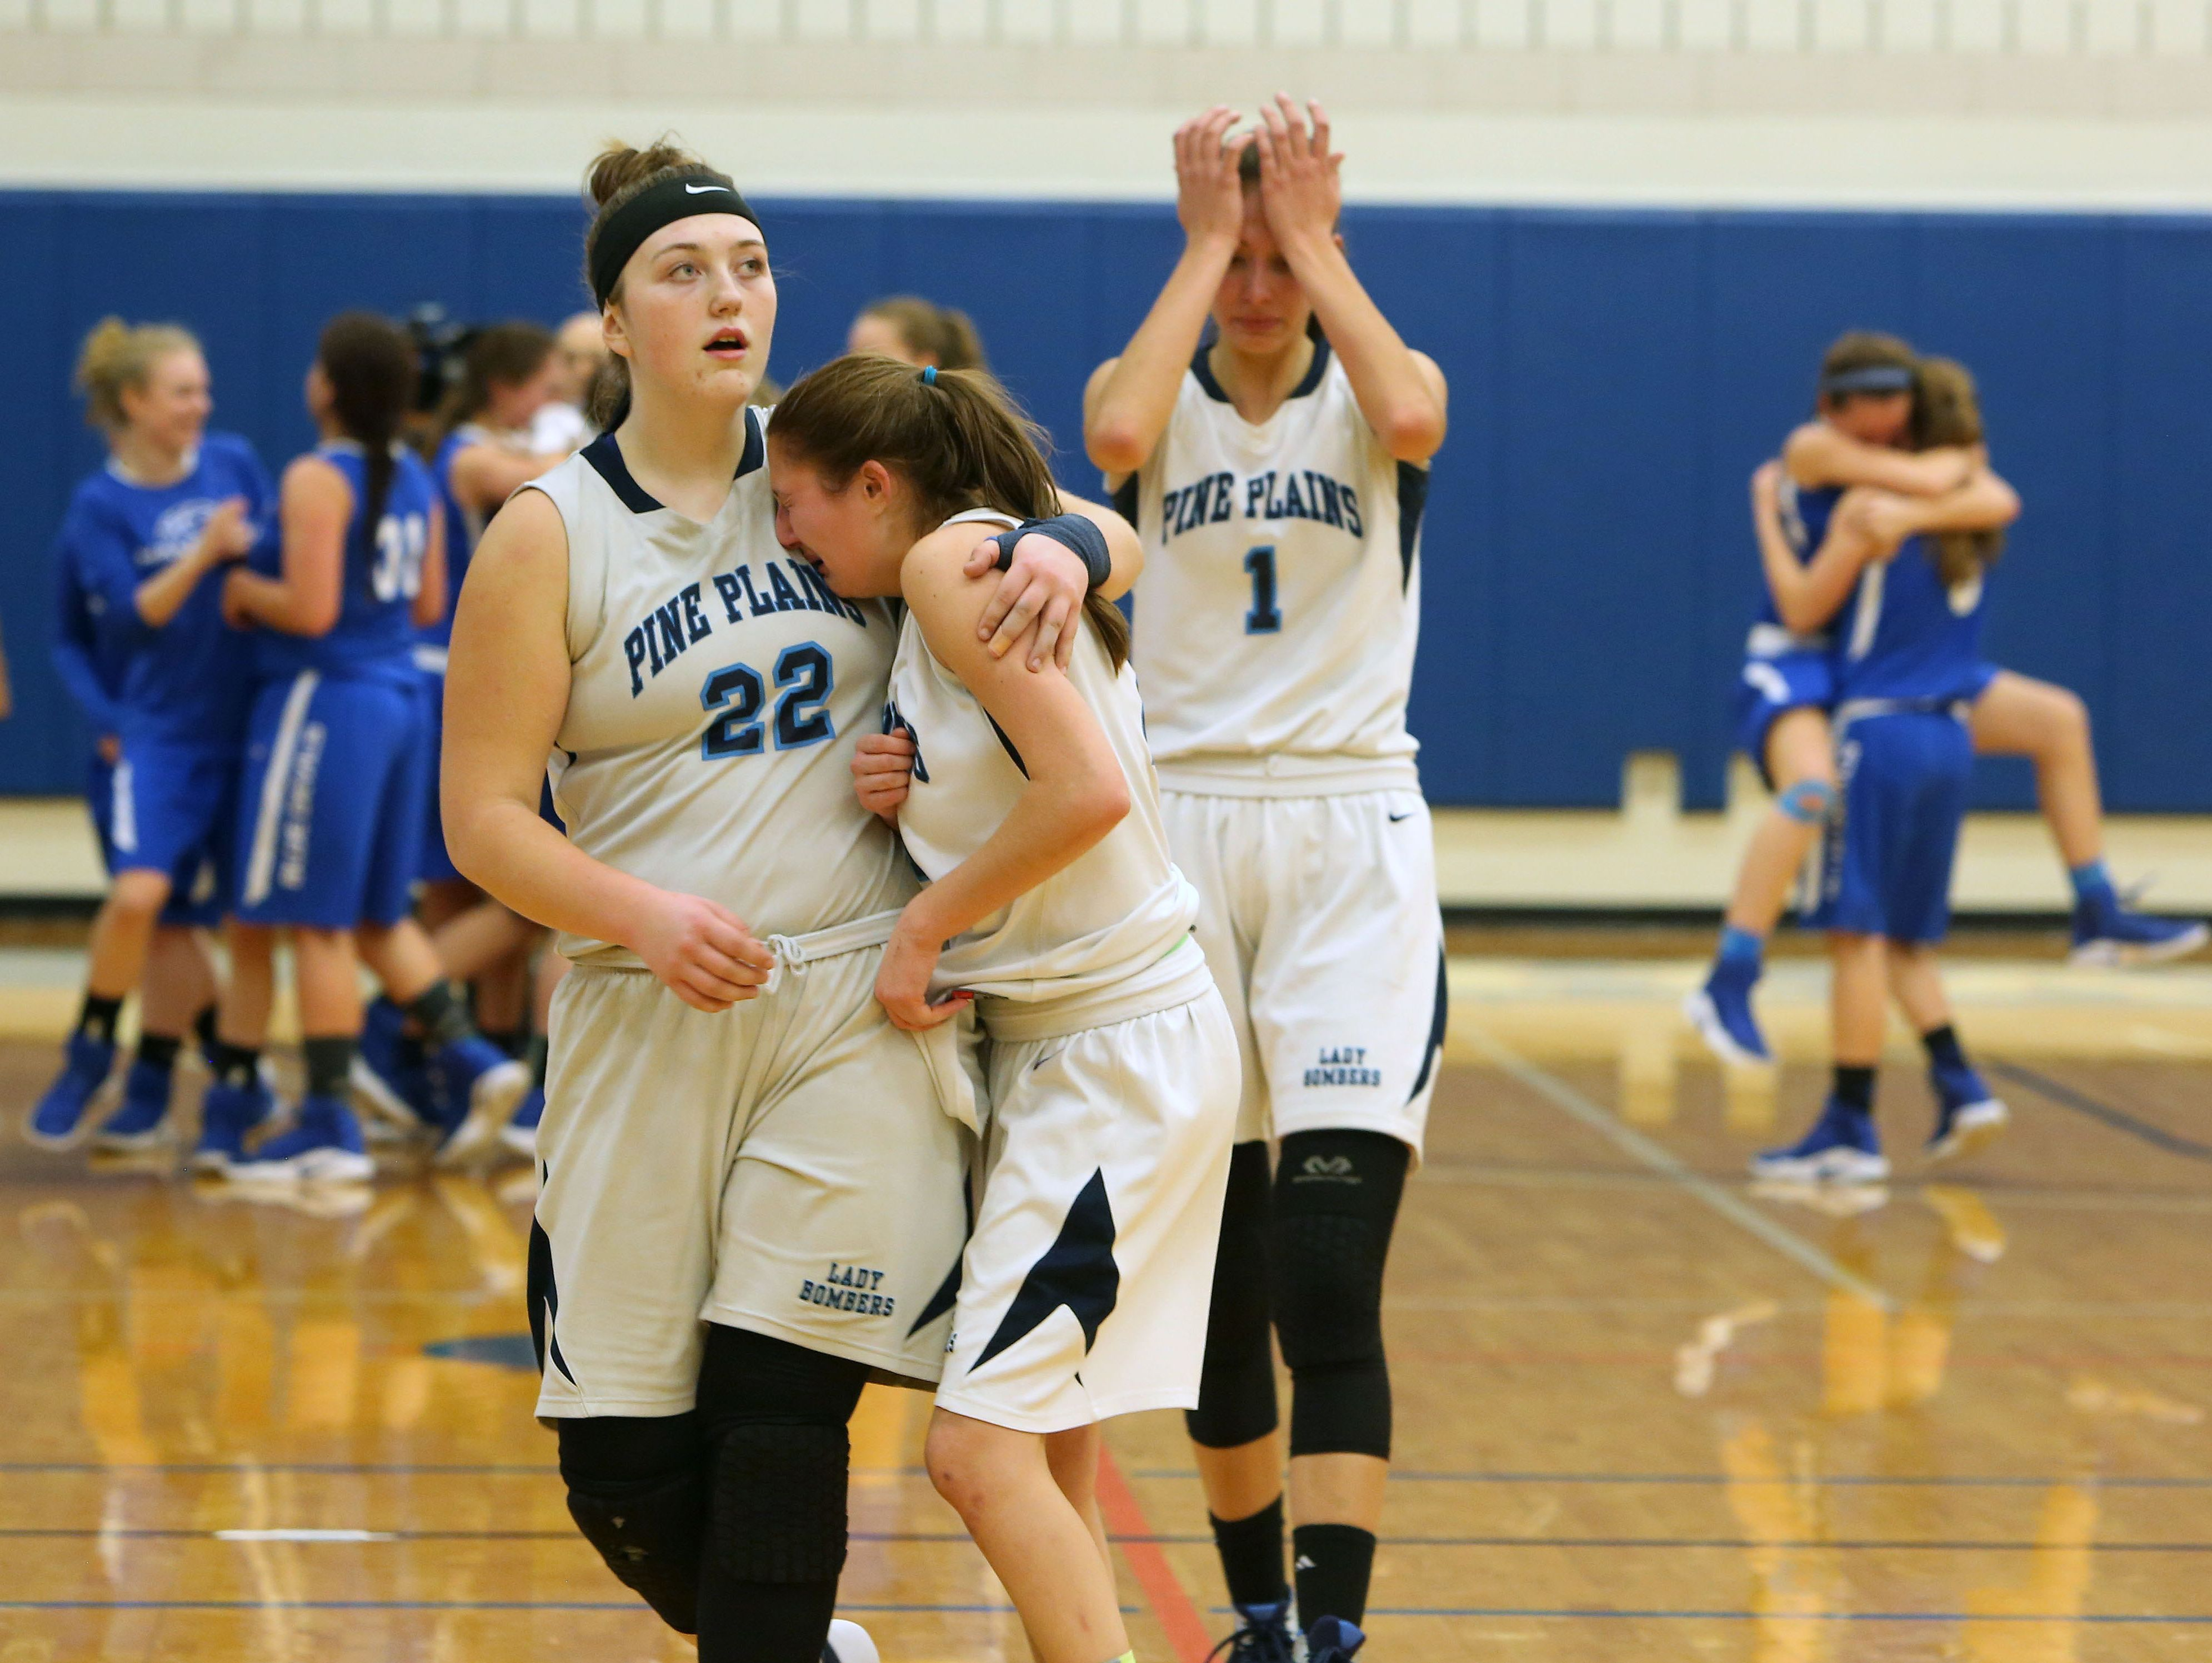 Pine Plains players walk off the court after they were defeated by Haldane 47-41 in the state regional semifinal at SUNY New Paltz March 7, 2017.